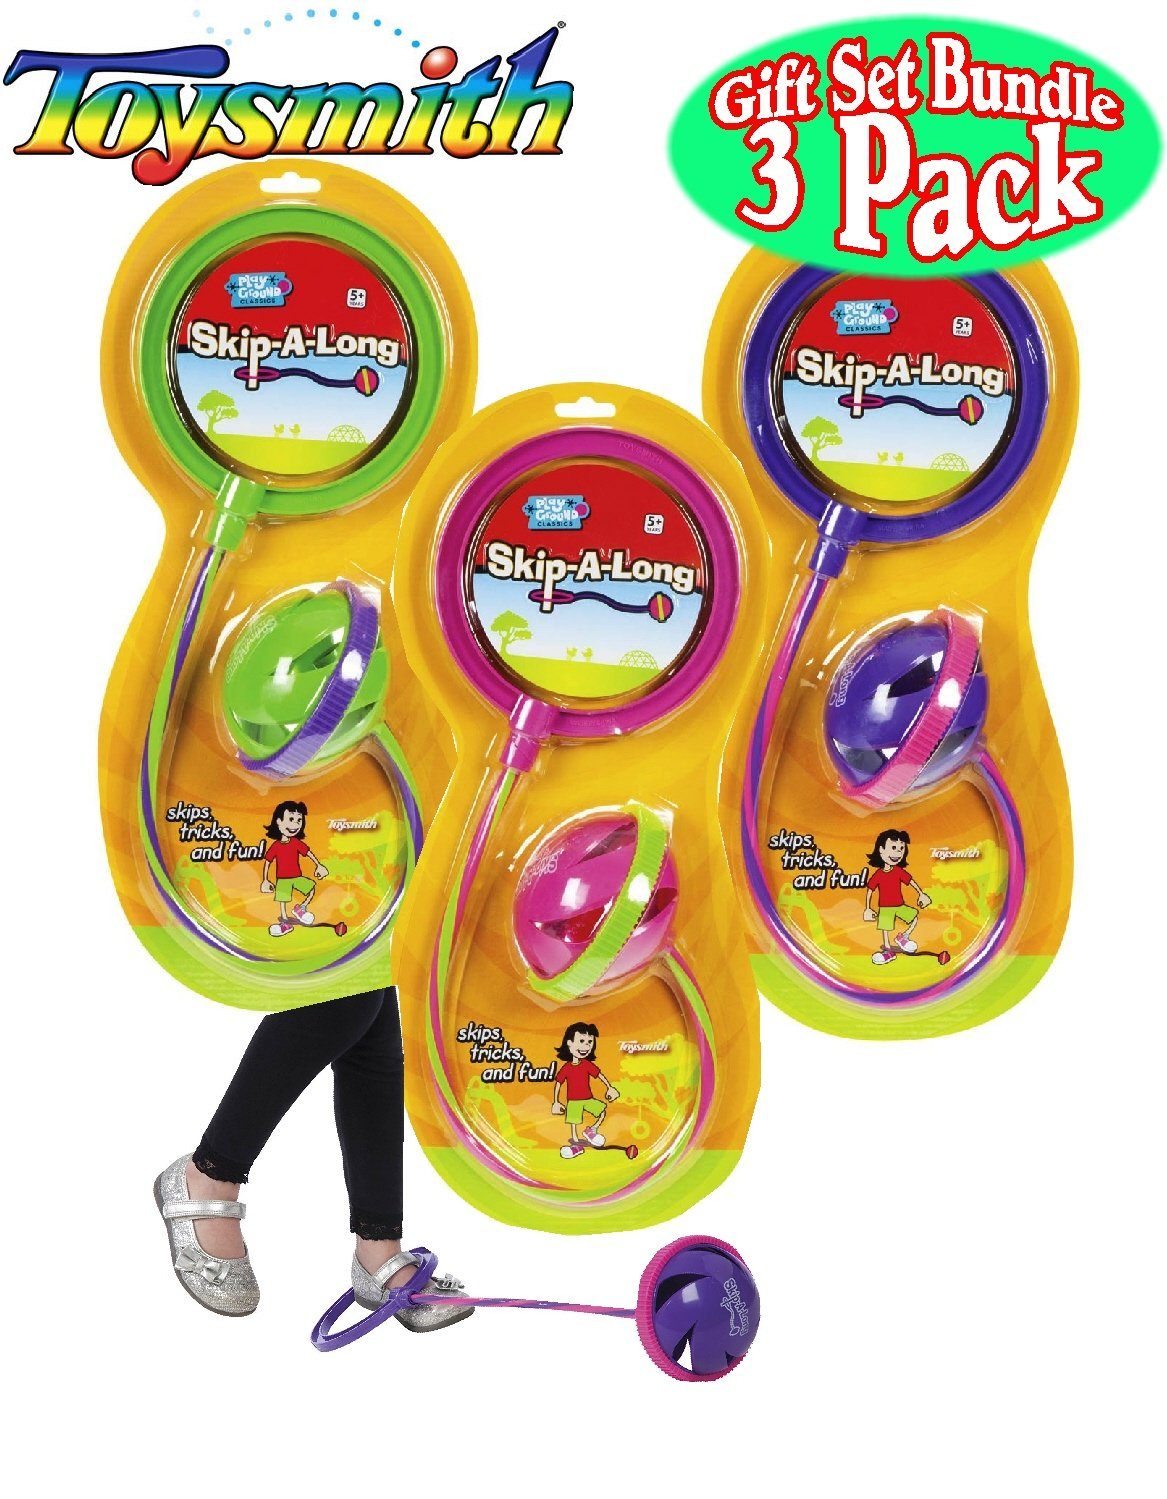 Toysmith Skip-A-Long Purple/Pink, Green/Purple & Pink/Green Complete Gift Set Bundle - 3 Pack by Toysmith (Image #1)